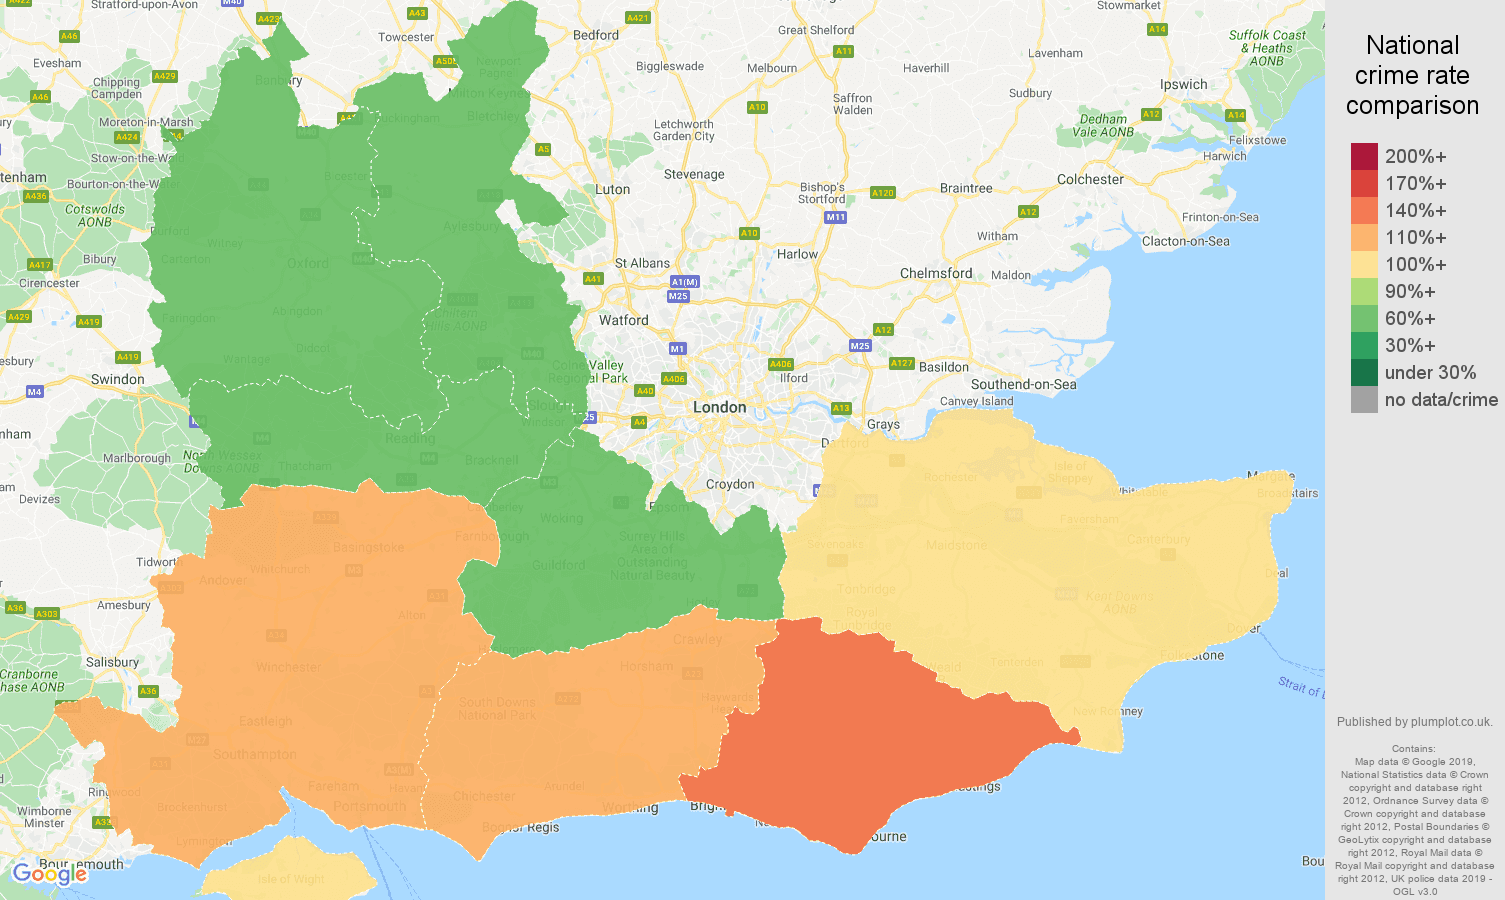 South East possession of weapons crime rate comparison map